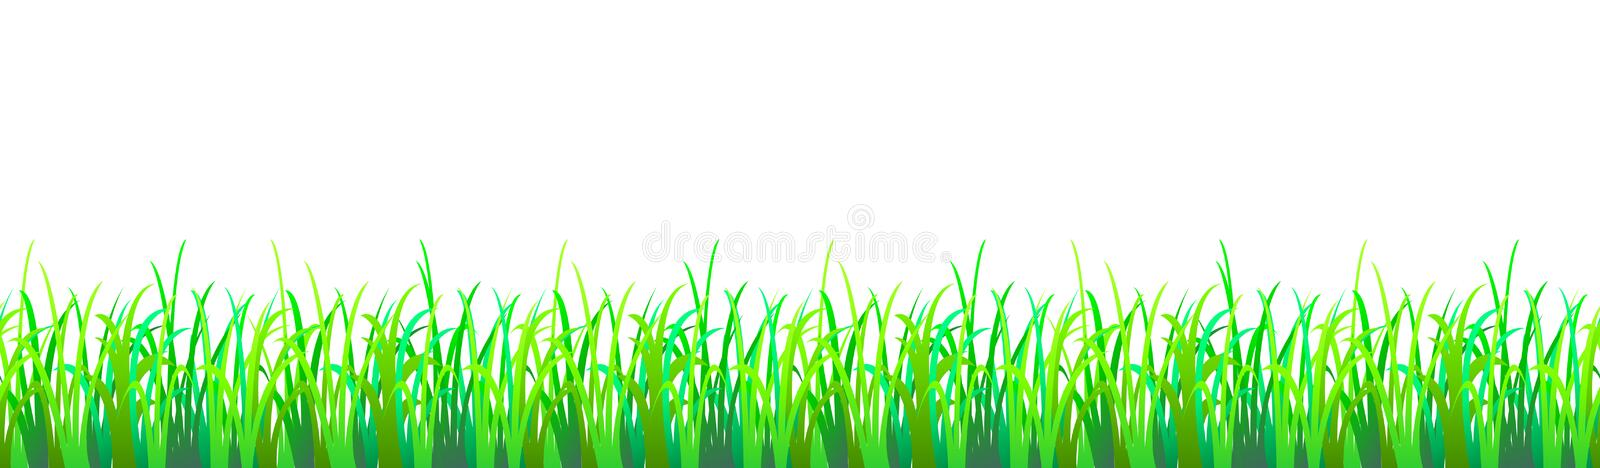 Seamless grass royalty free stock image